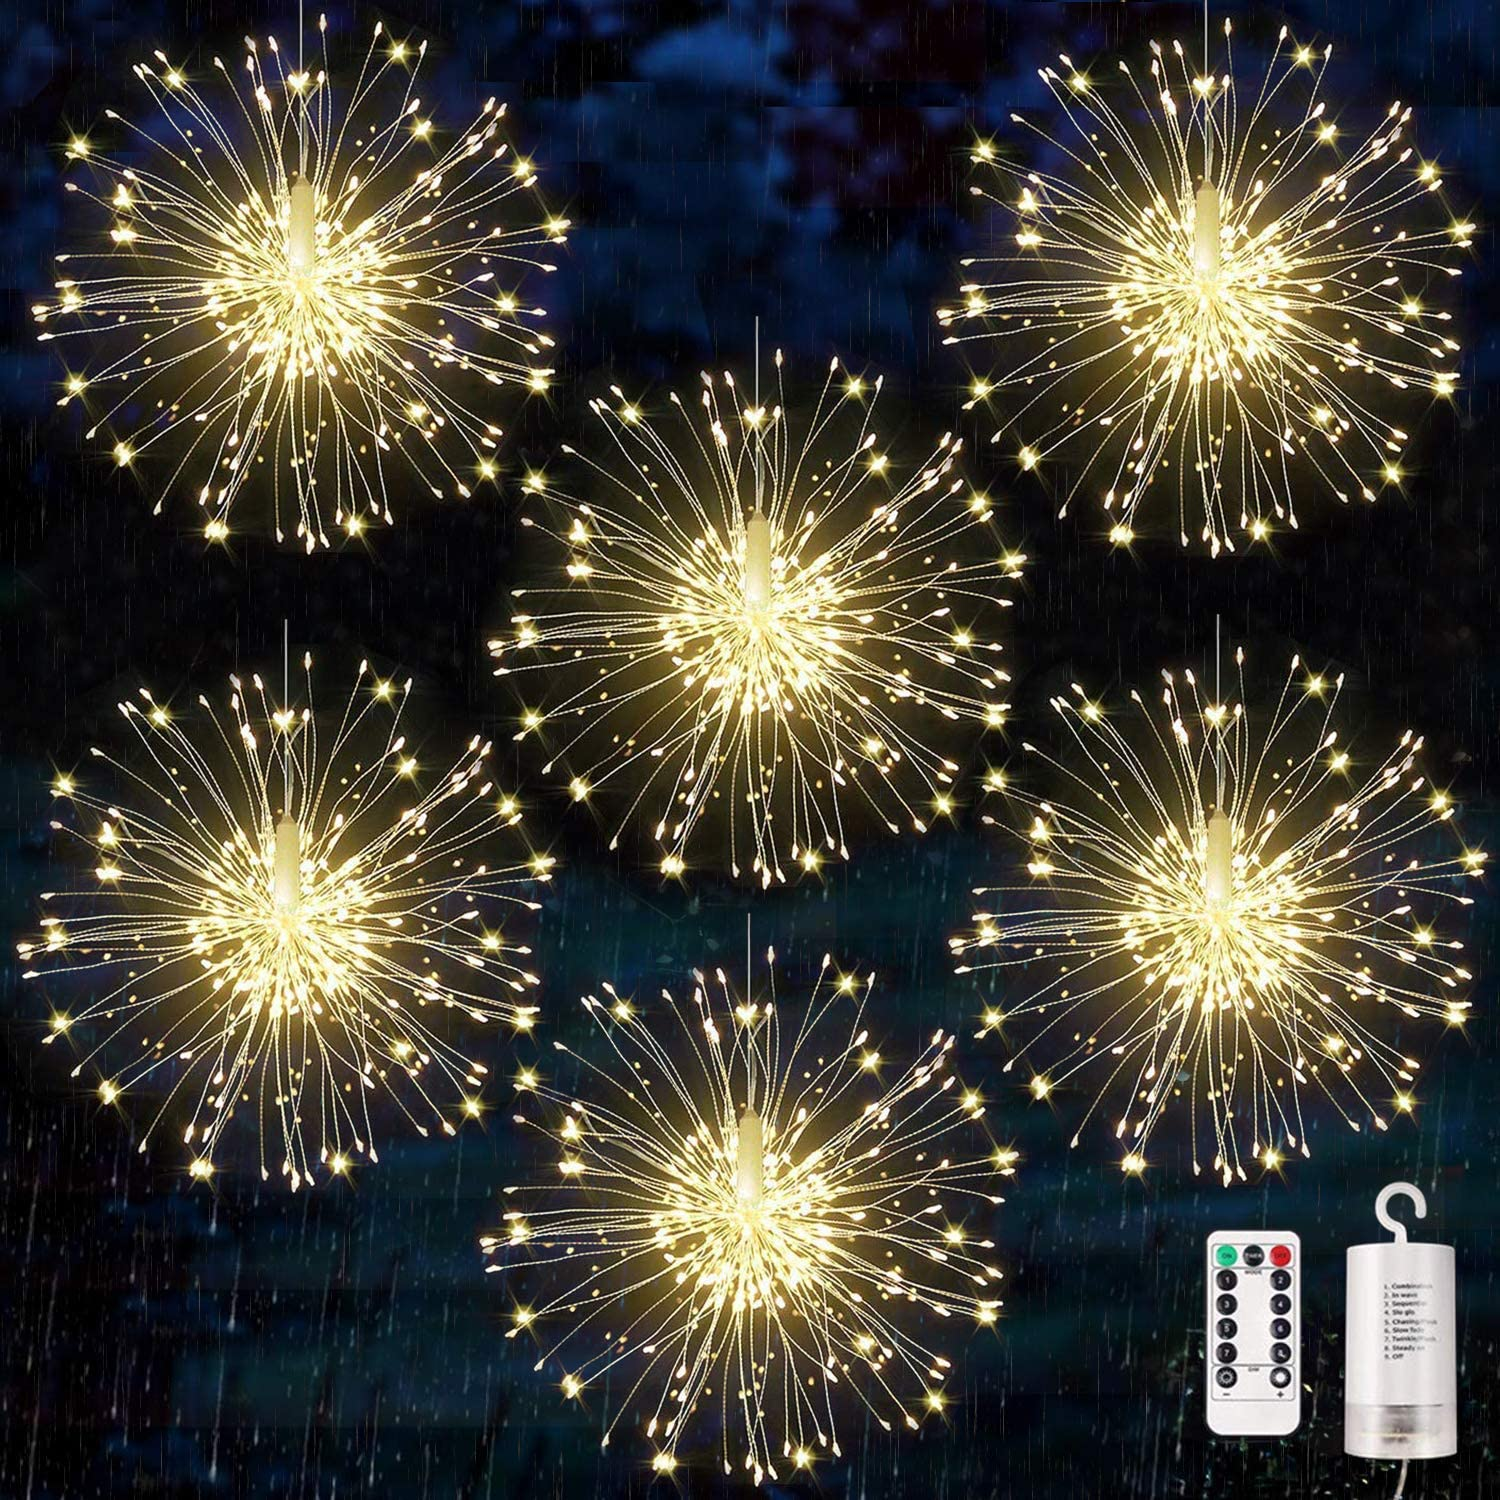 6 pack Firework Lights Copper Wire Led Starburst Lights, Dimmable Battery Operated Hanging Lights with 8 Modes, Remote Control, Waterproof Fairy String Lights for Home, Patio, Christmas Decoration